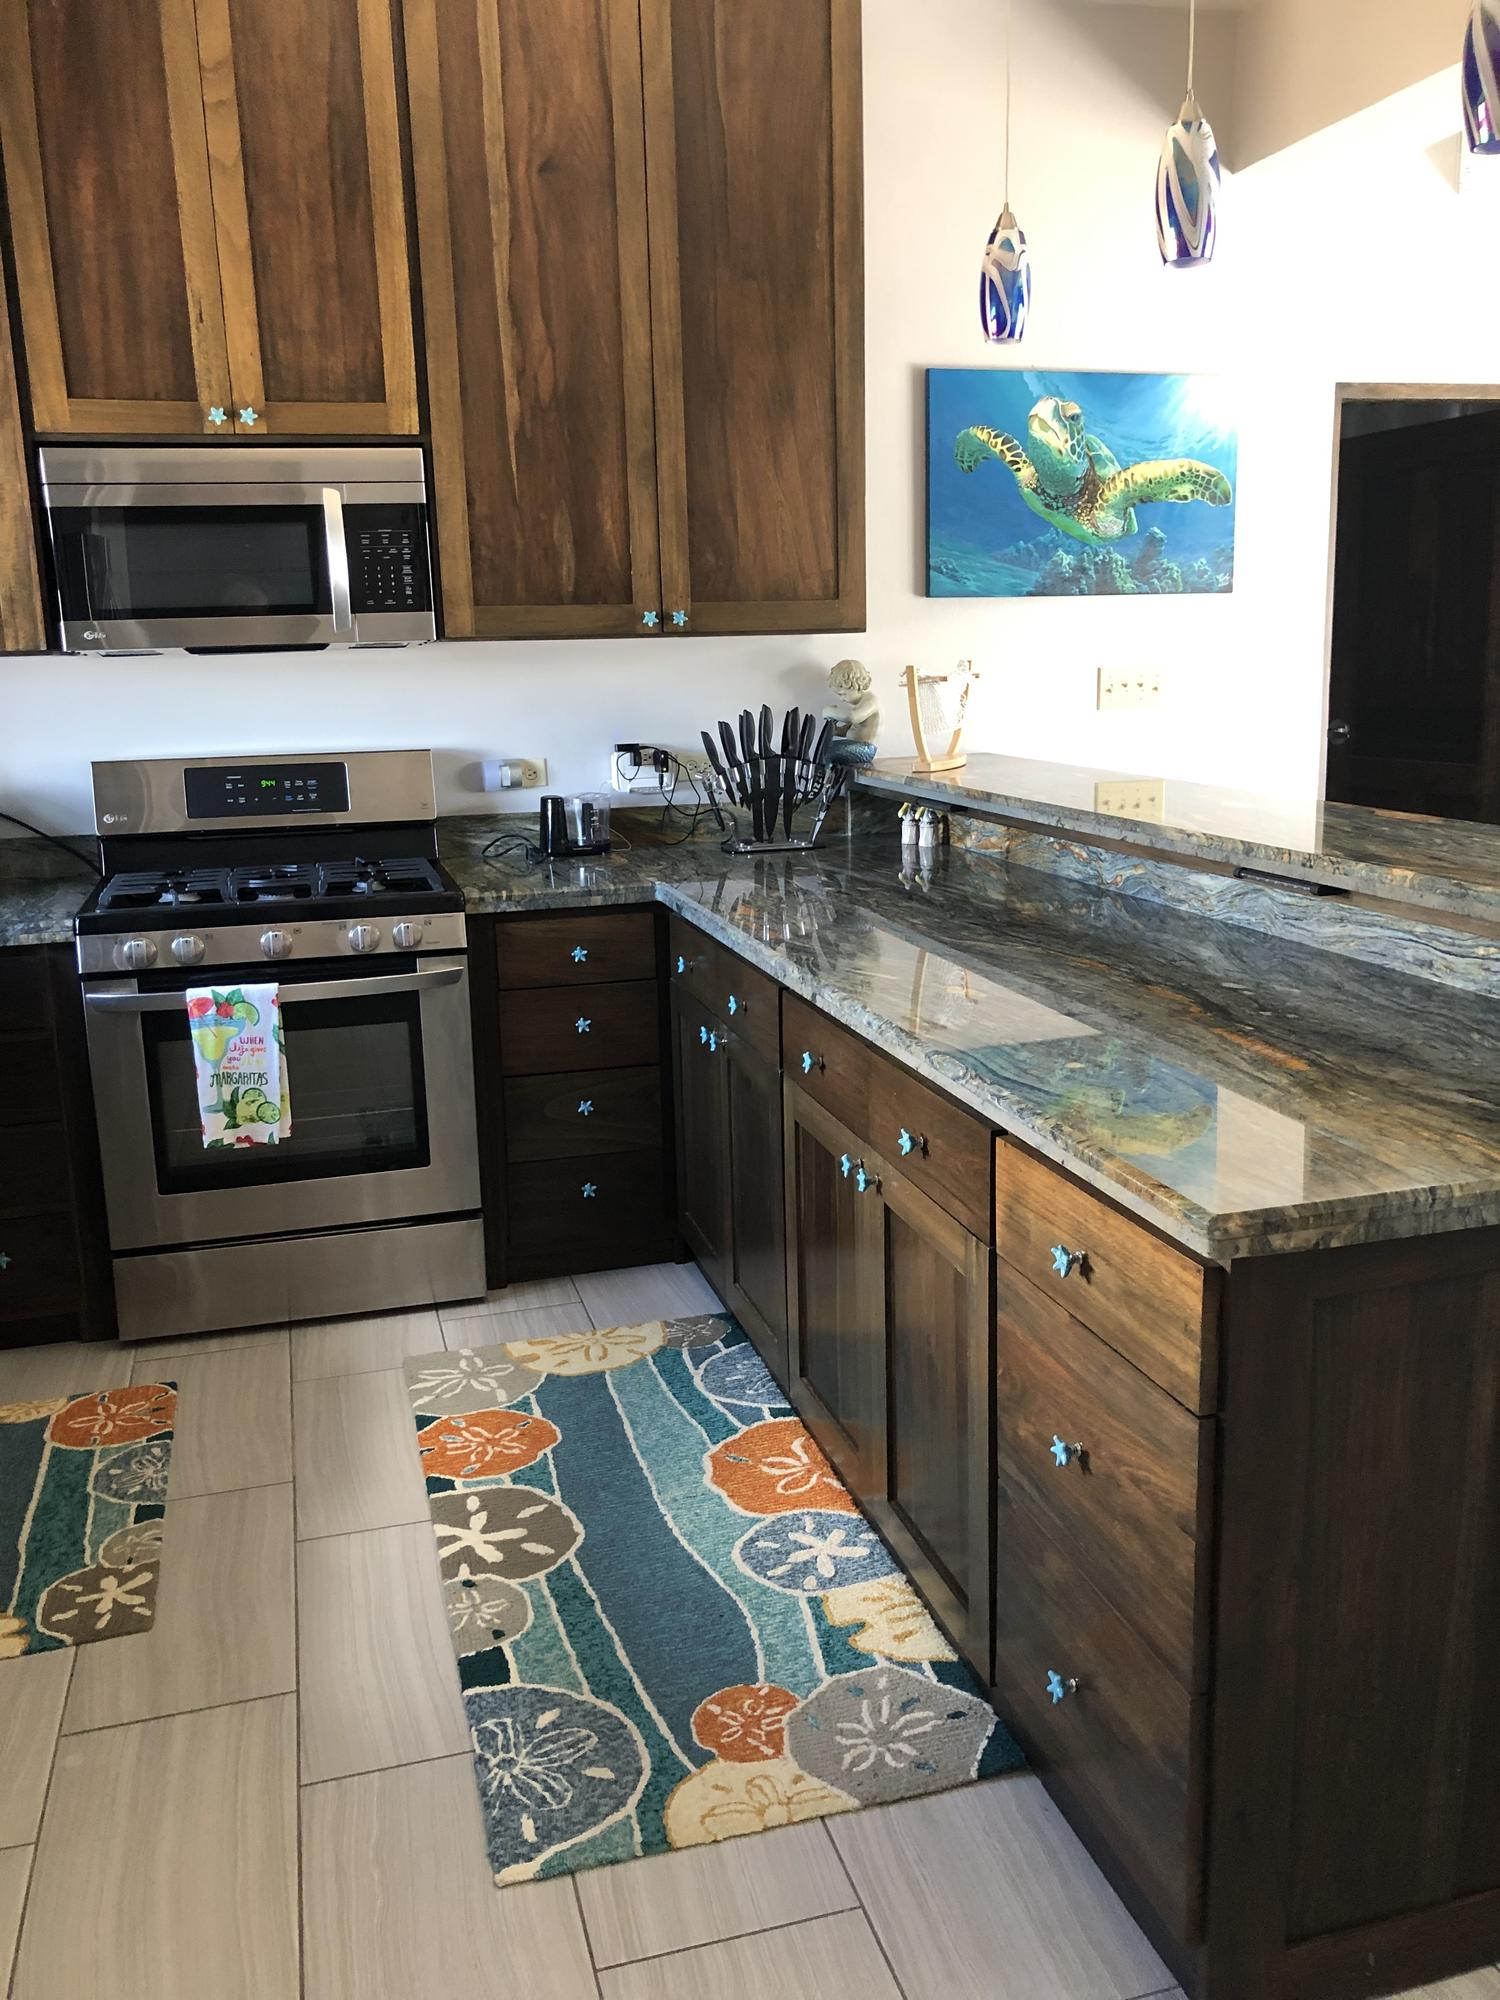 Fully equipped gourmet kitchen with granite counter tops and stainless appliances. Cabinets custom made from Belizean hardwood by local Artisans.